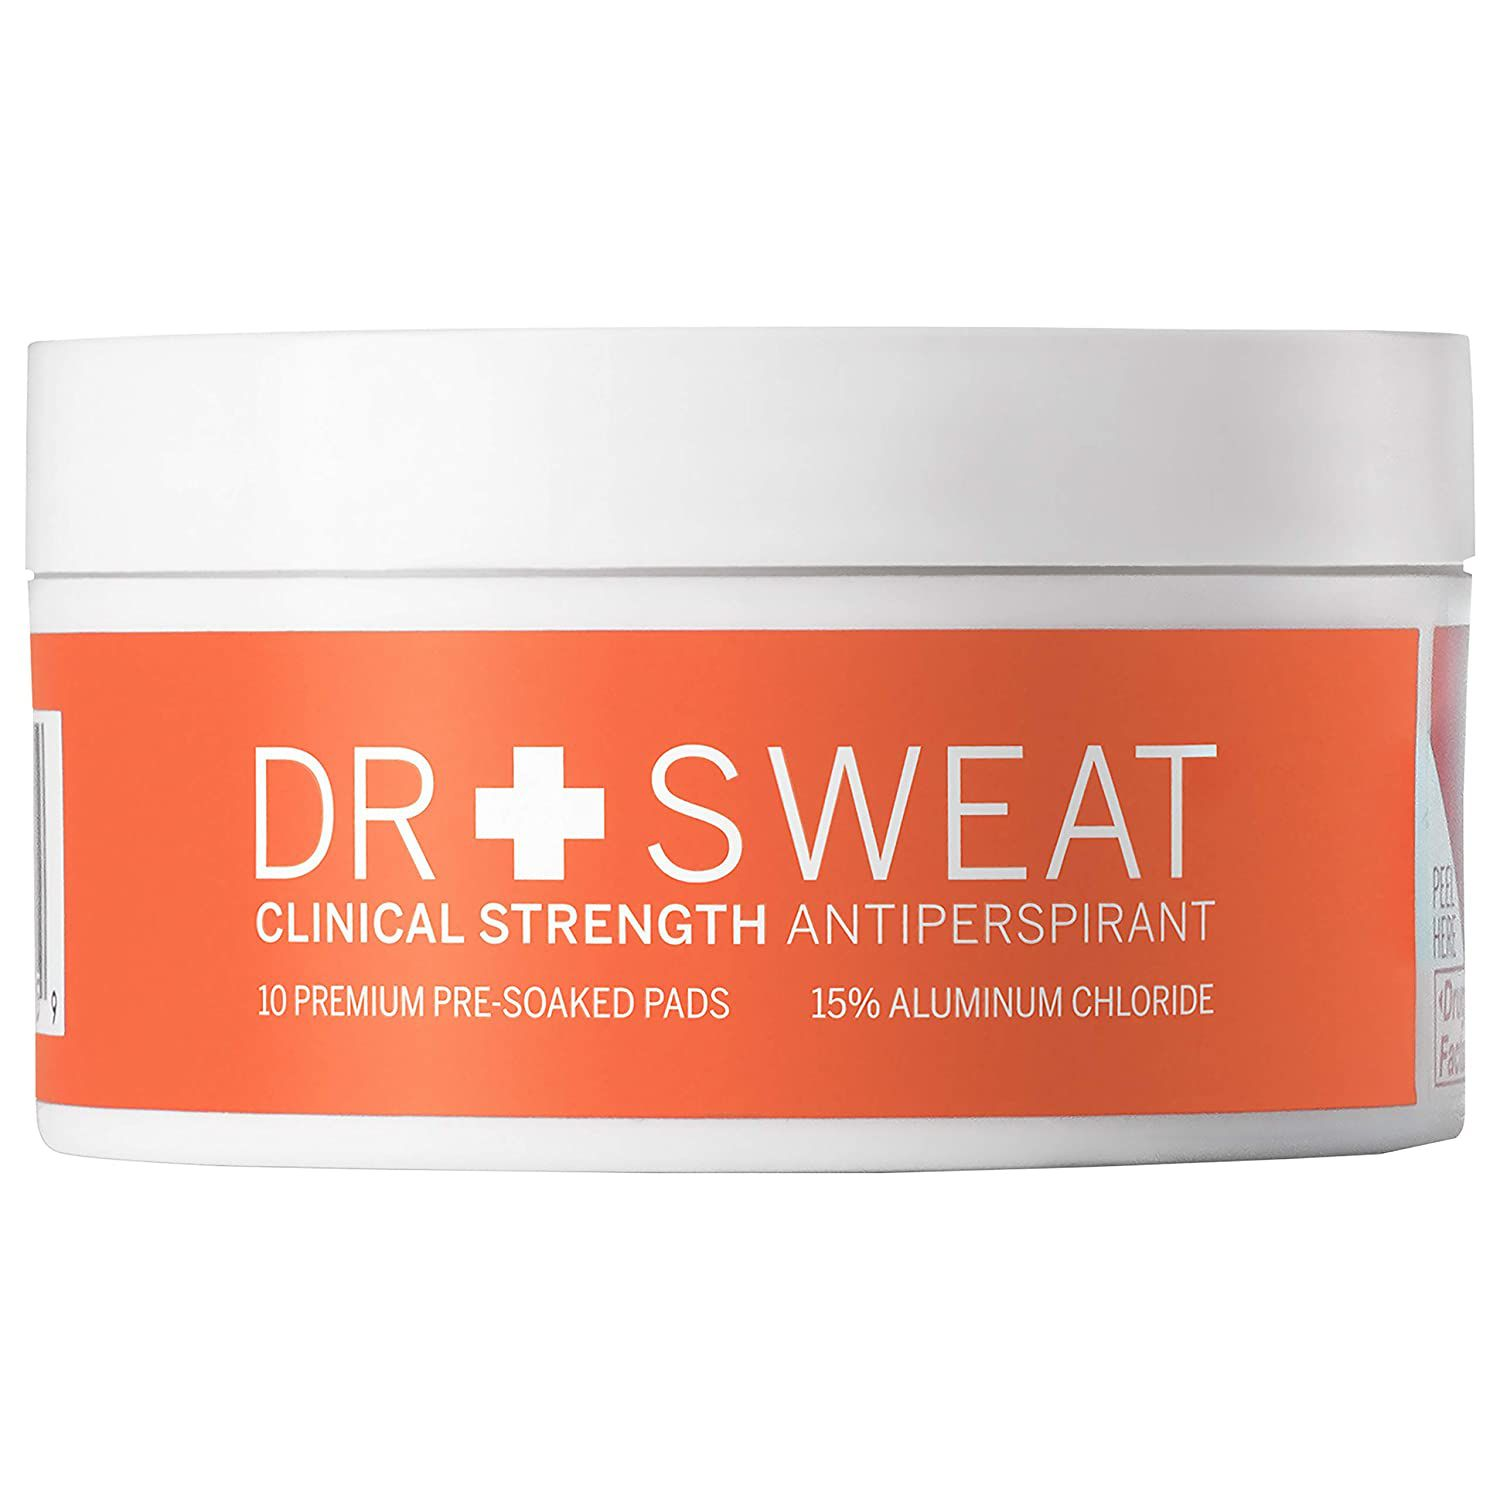 Dr. Sweat Clinical Strength Antiperspirant